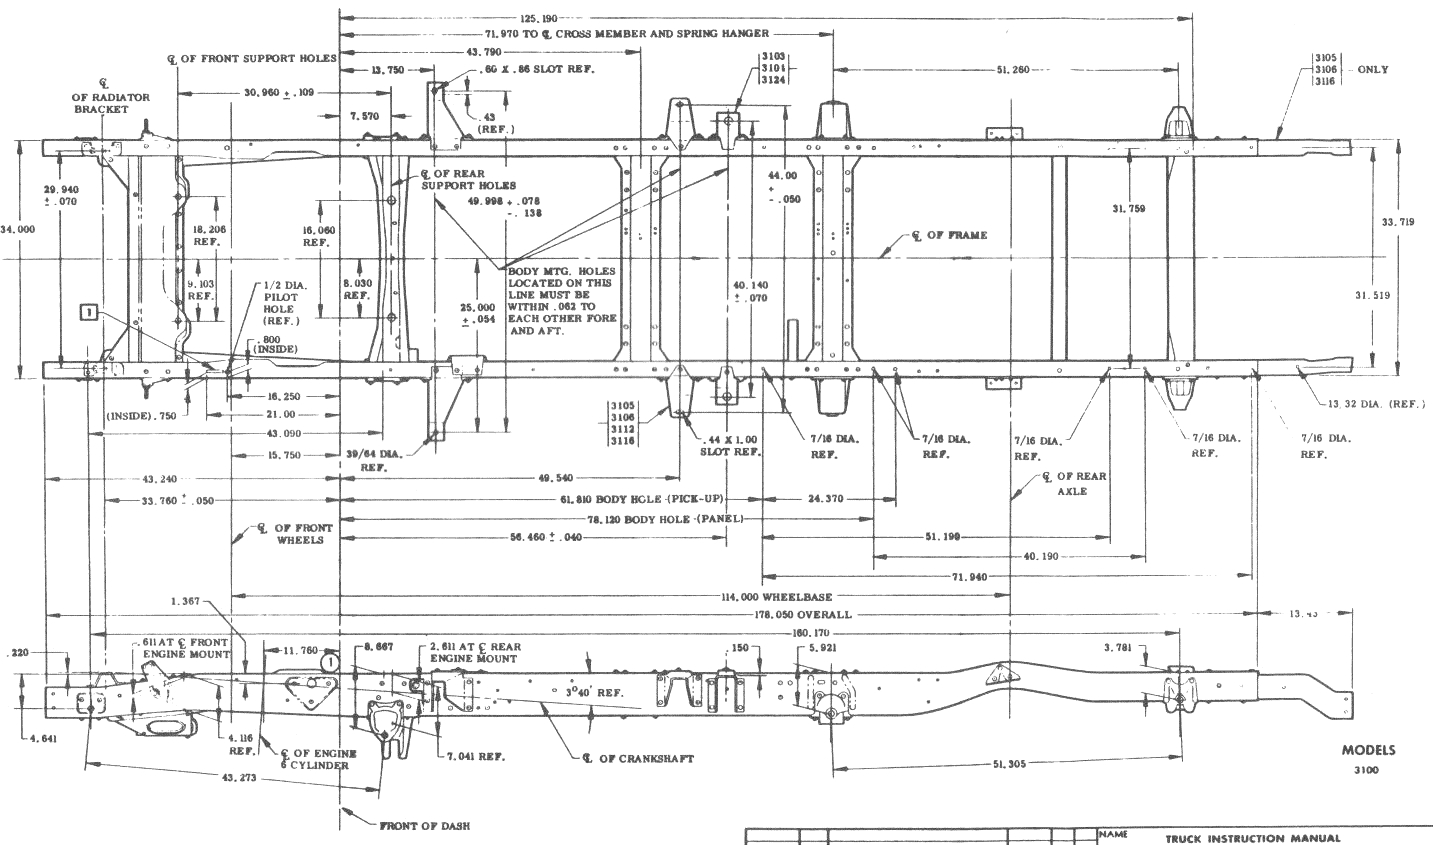 1984 Buick Skylark Engine Diagram. Buick. Auto Wiring Diagram